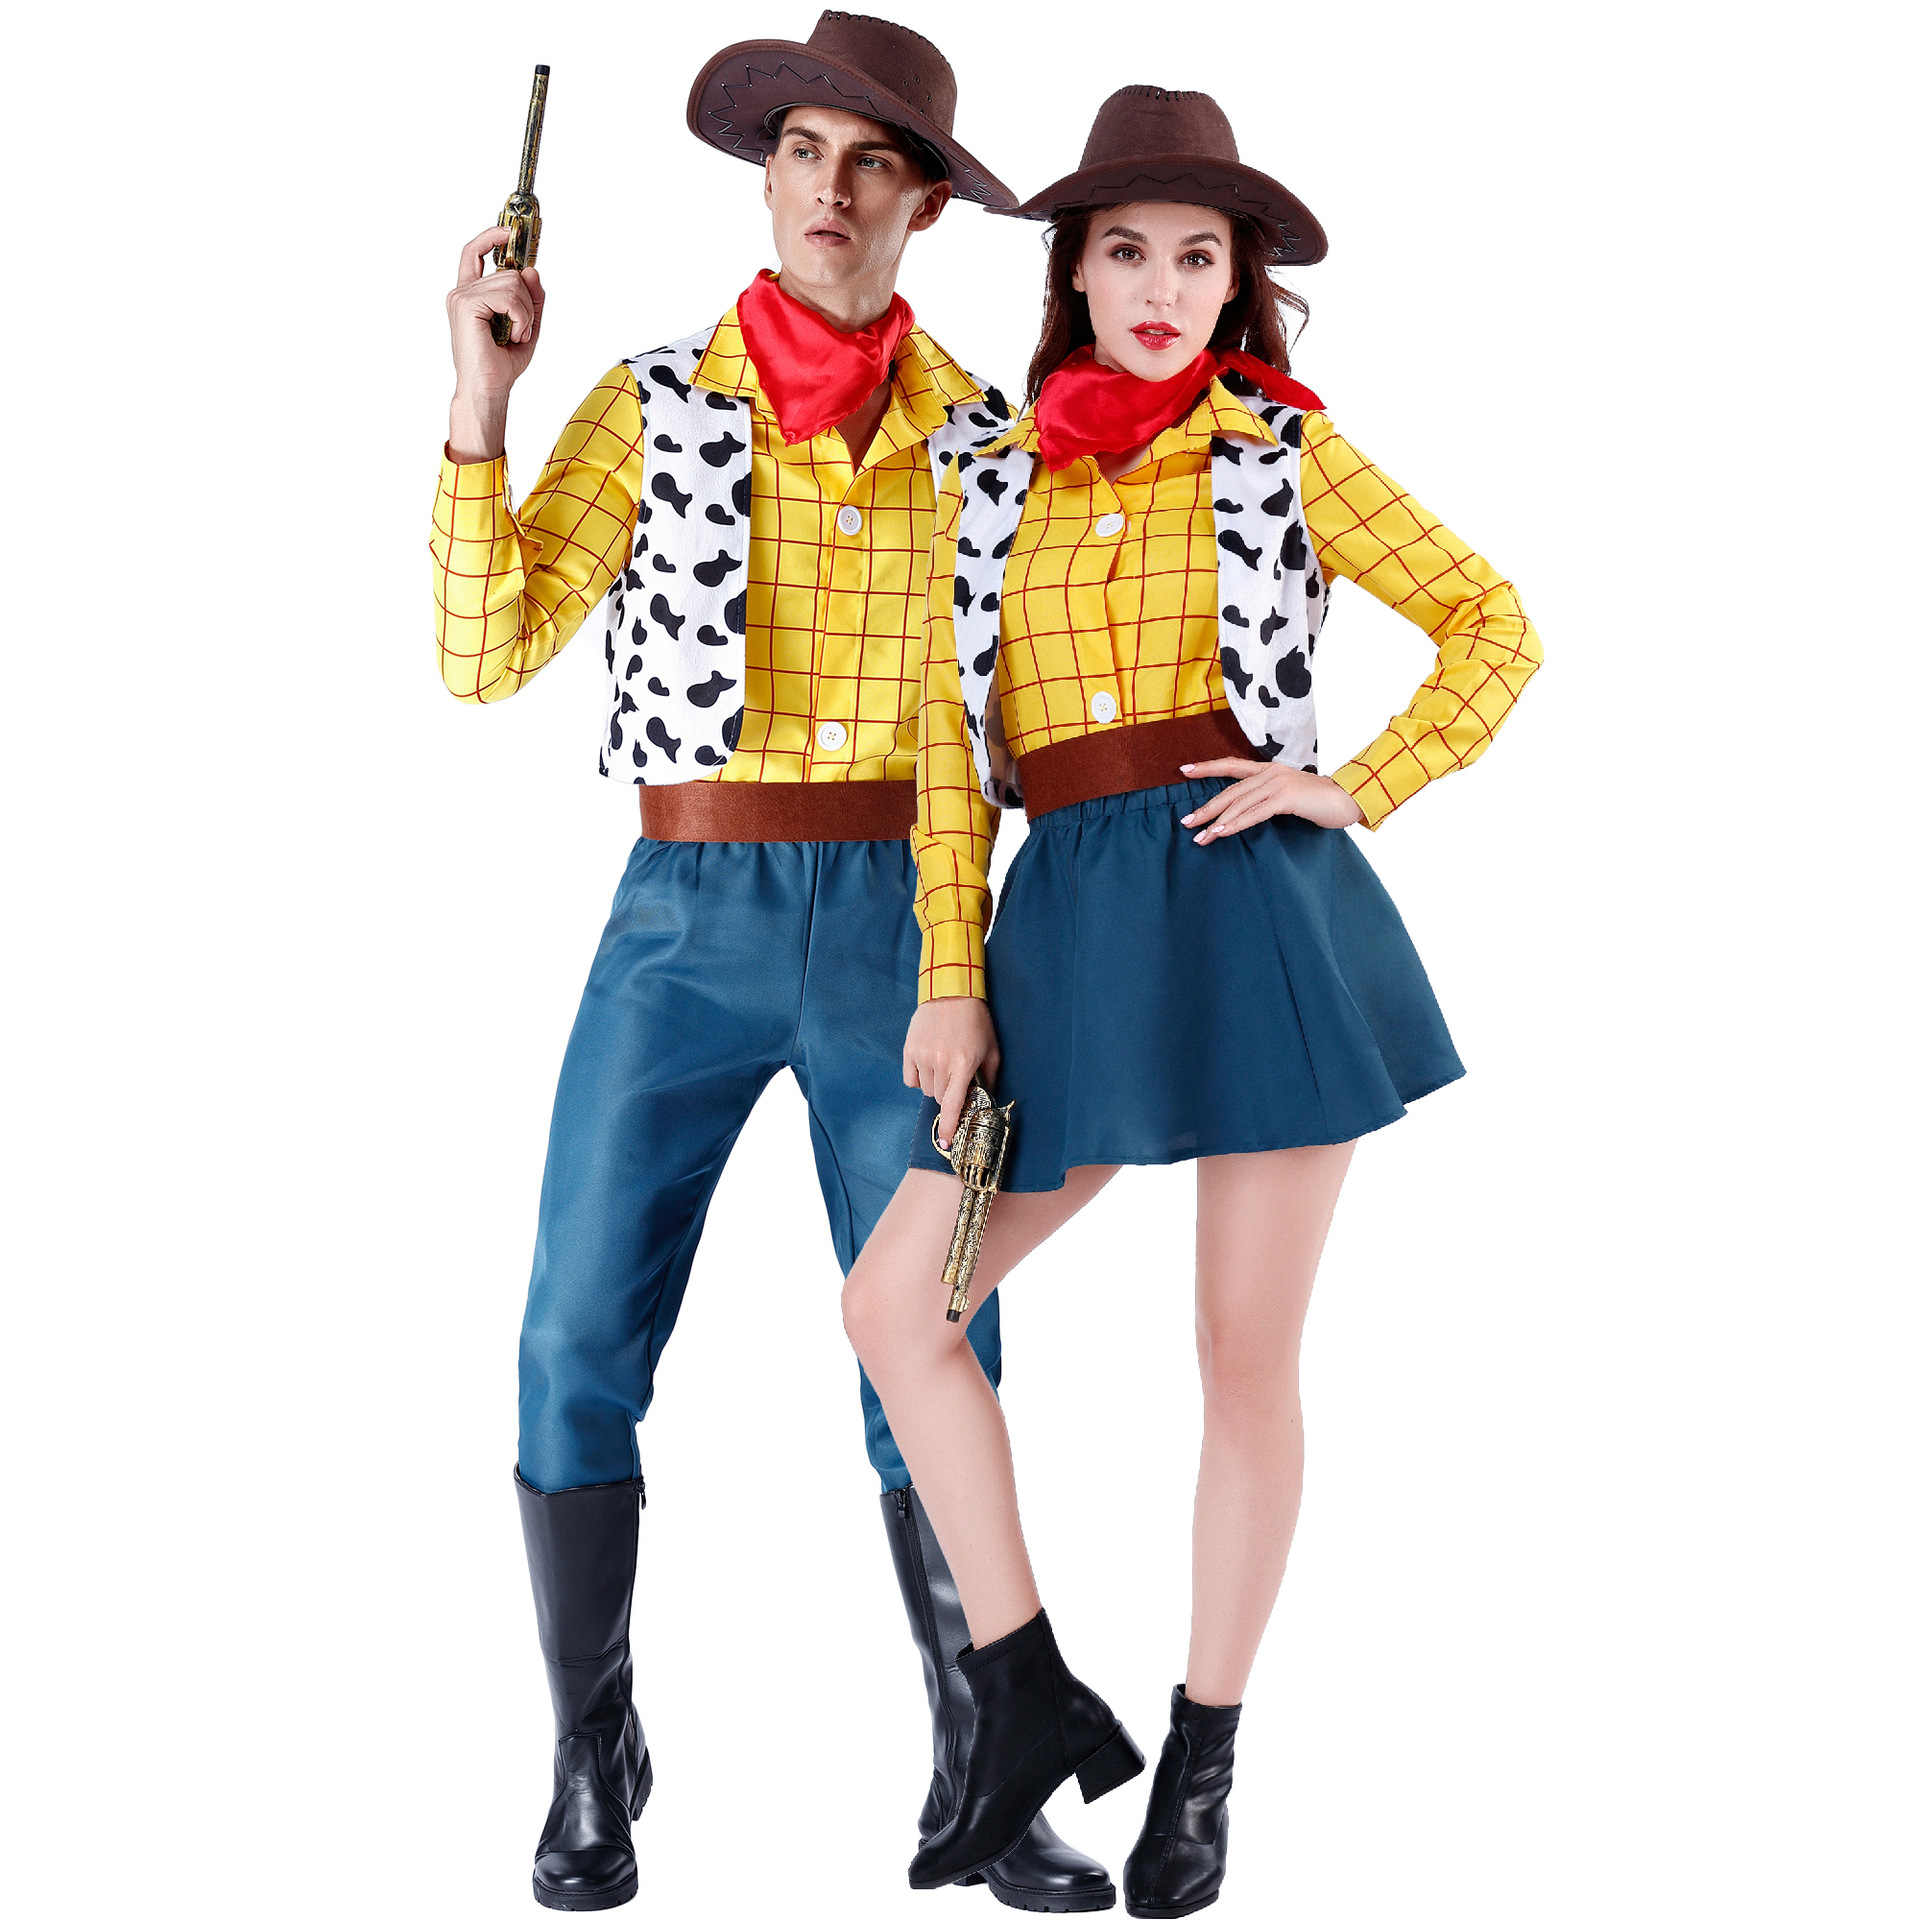 Toy Story 4 Woody Fancy Dress Boys Halloween Performance Costume Party Cosplay